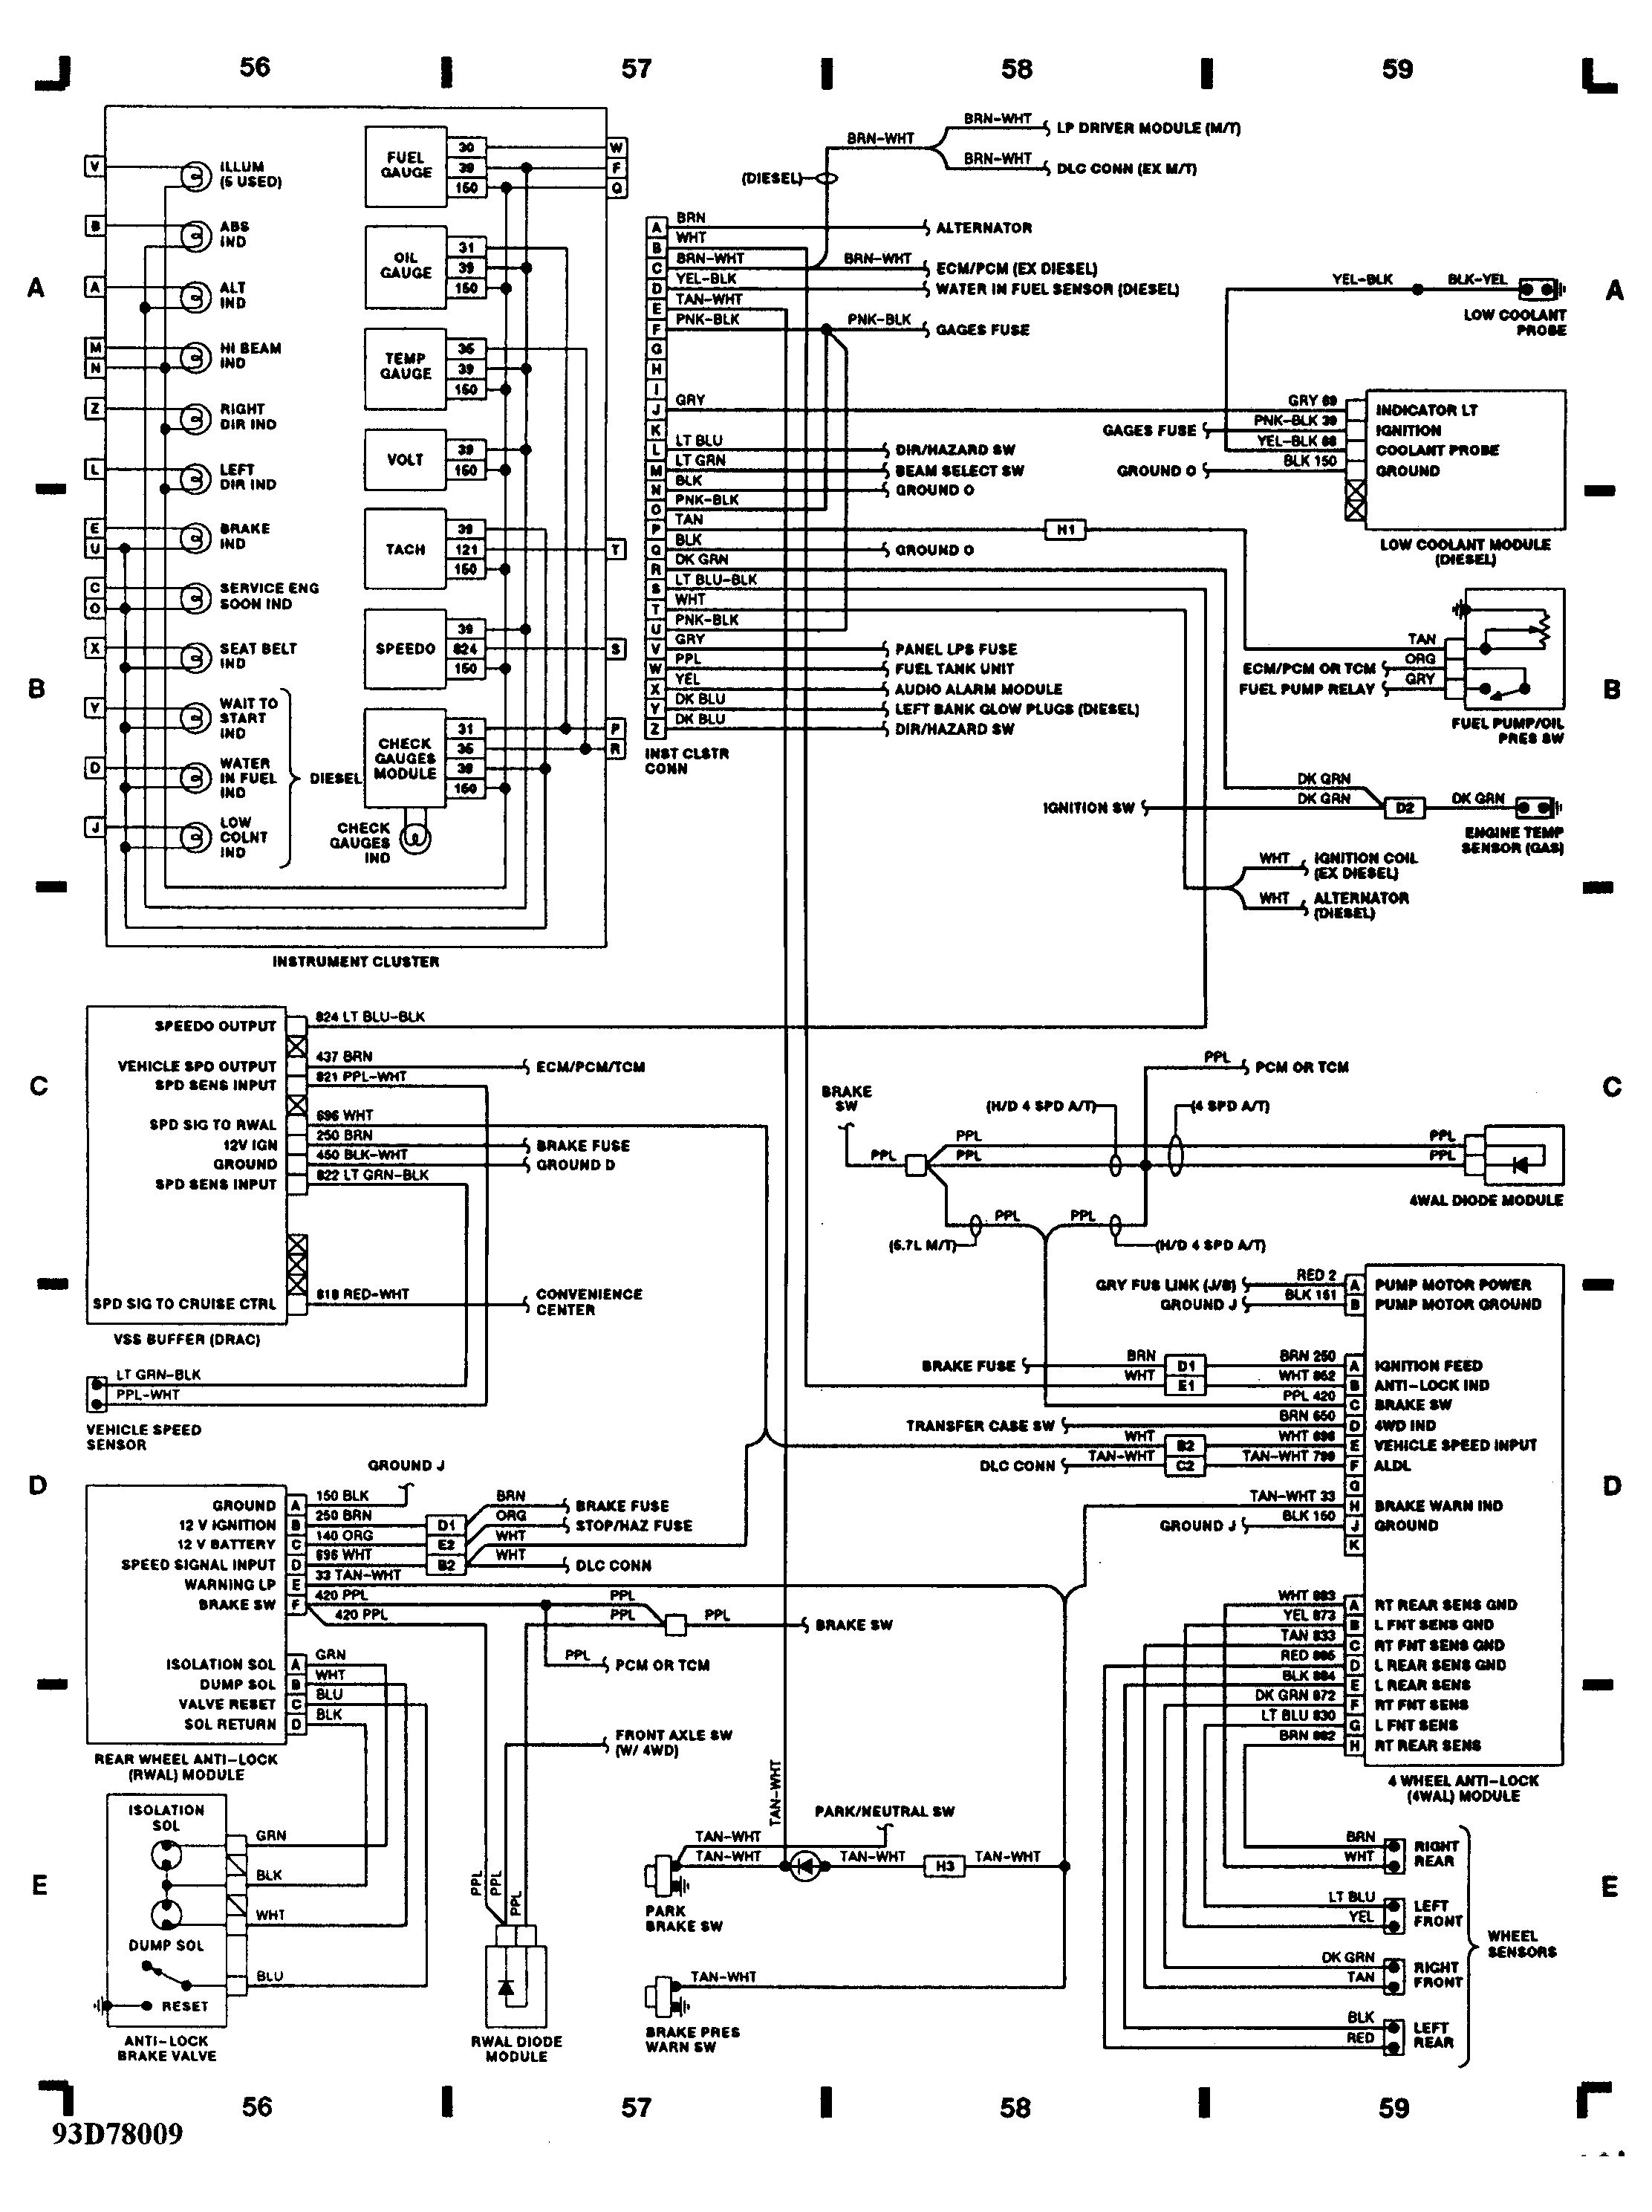 3 7 L Vortec Engine Diagram - wiring diagram on the net  L Vortec Engine Intake Diagram on